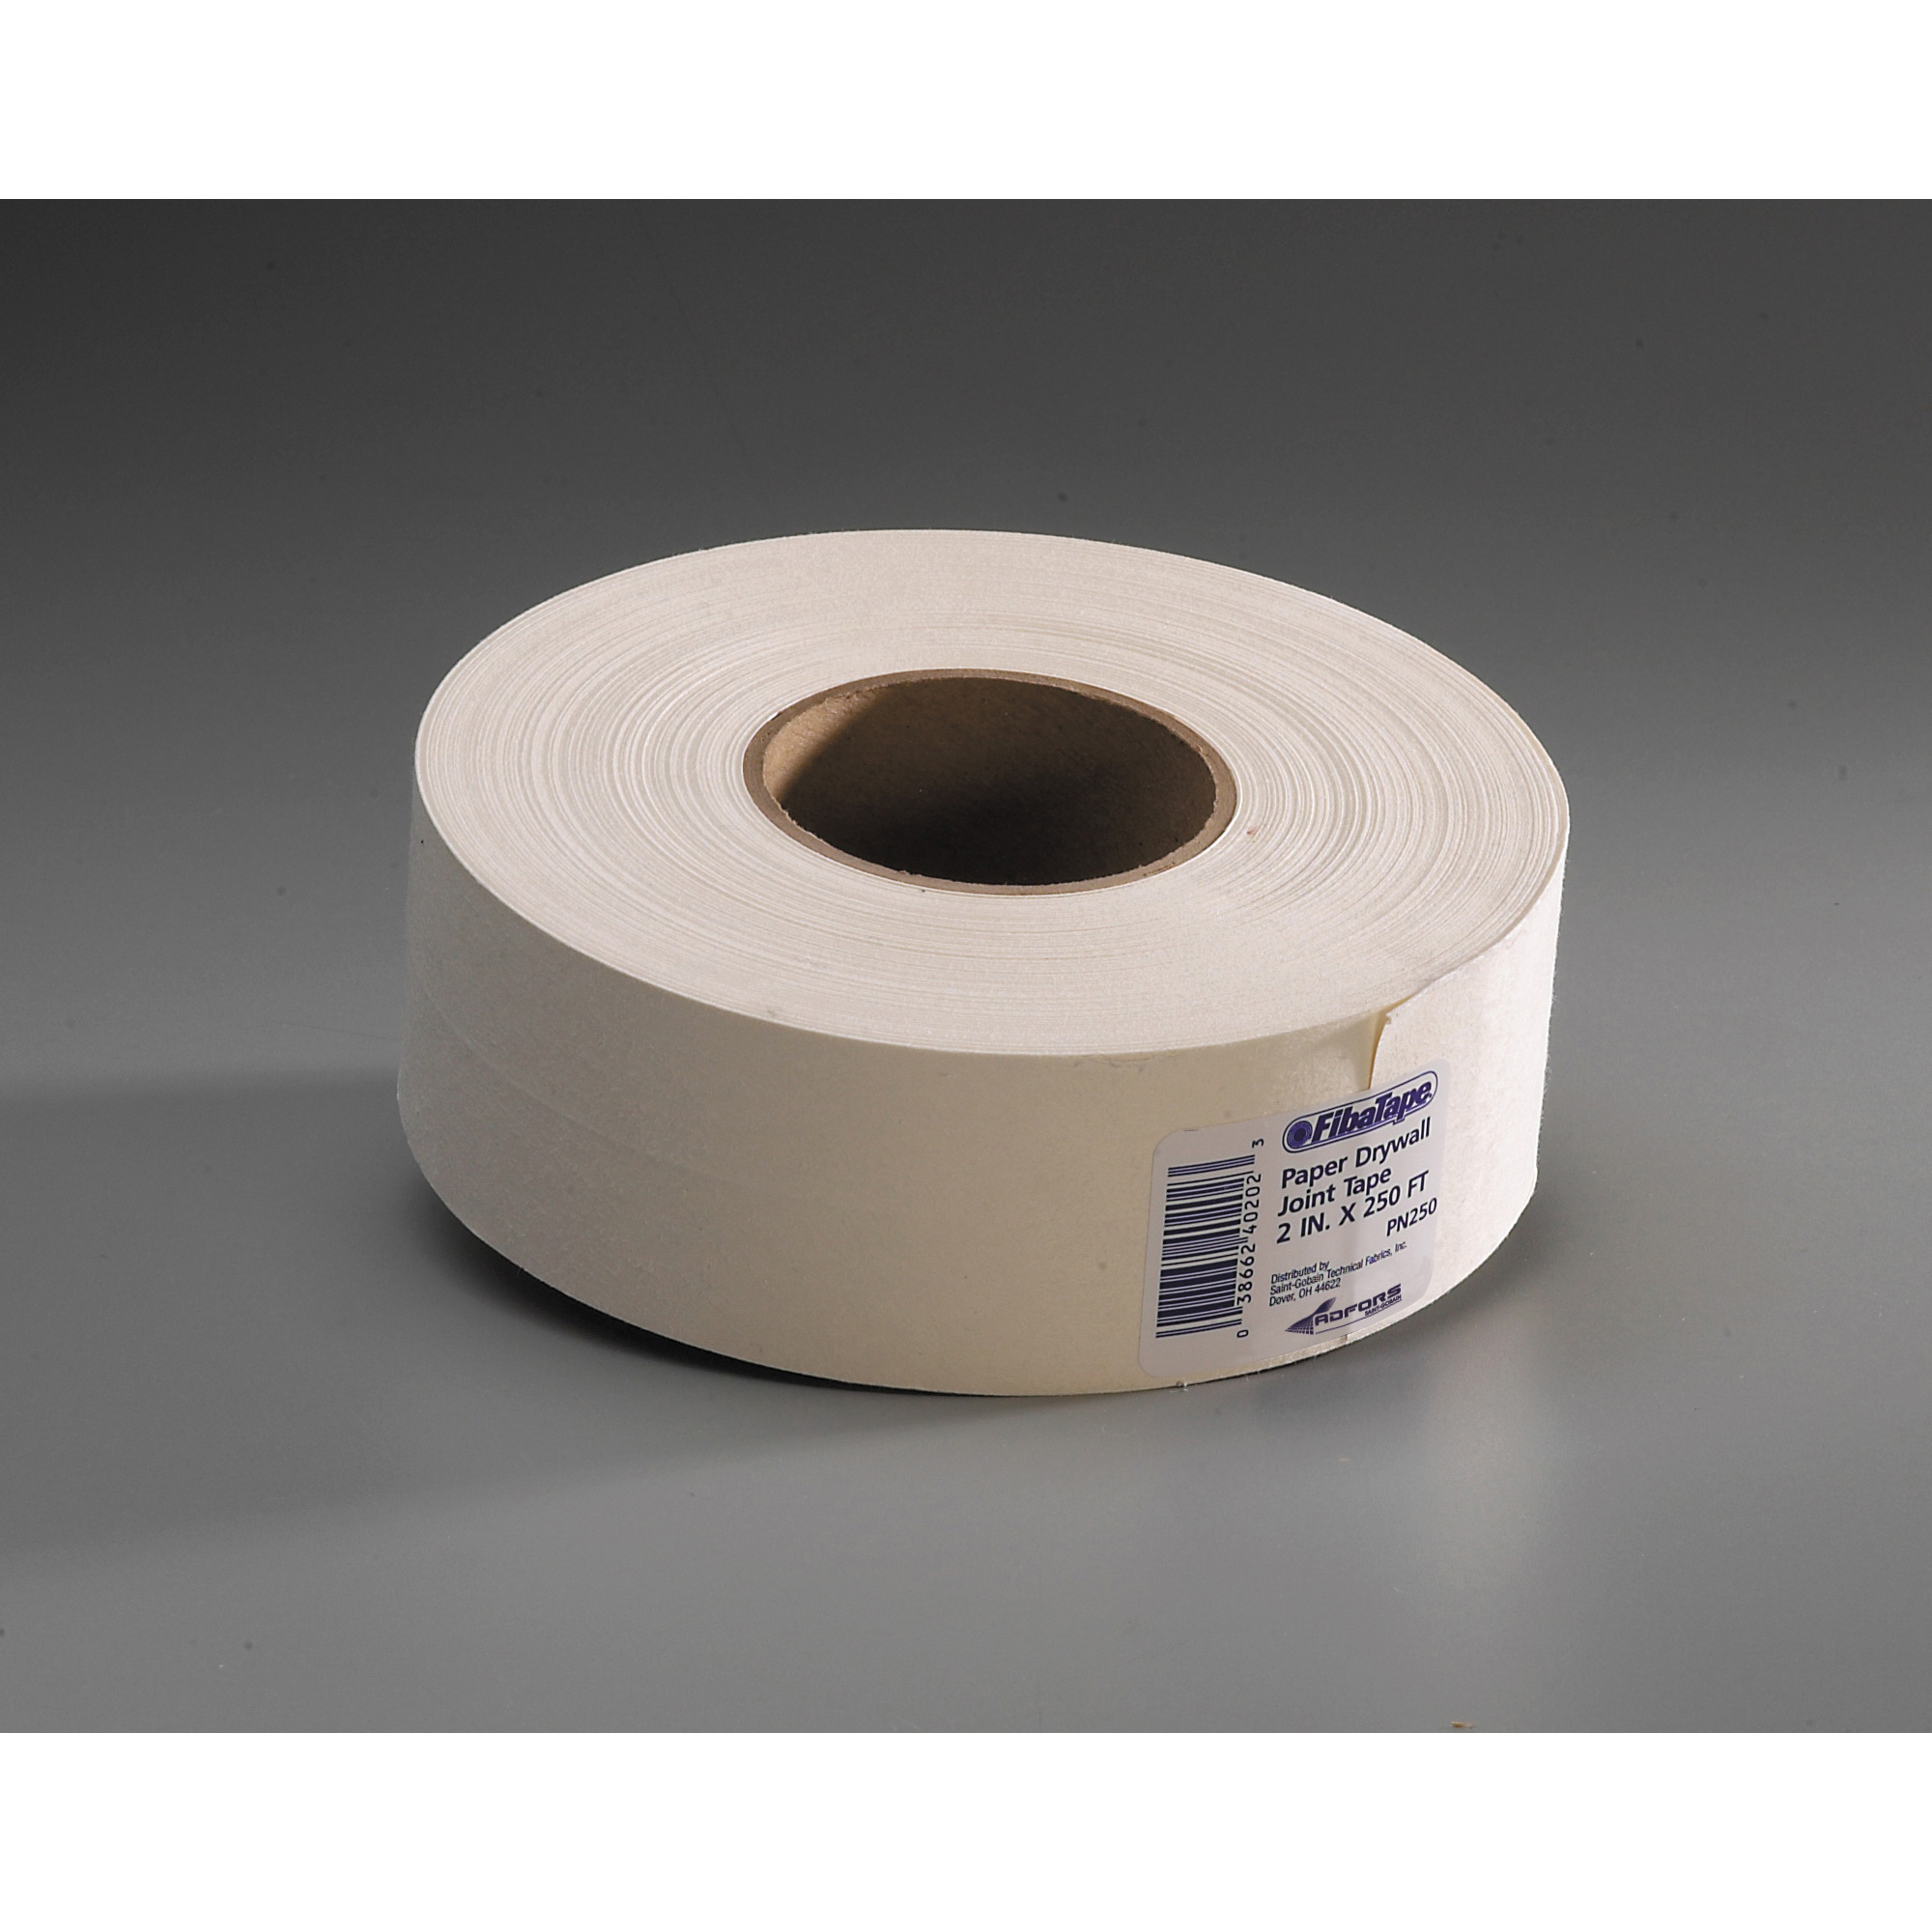 Picture of ADFORS FDW6618-U Drywall Joint Tape, 250 ft L, 2 in W, White